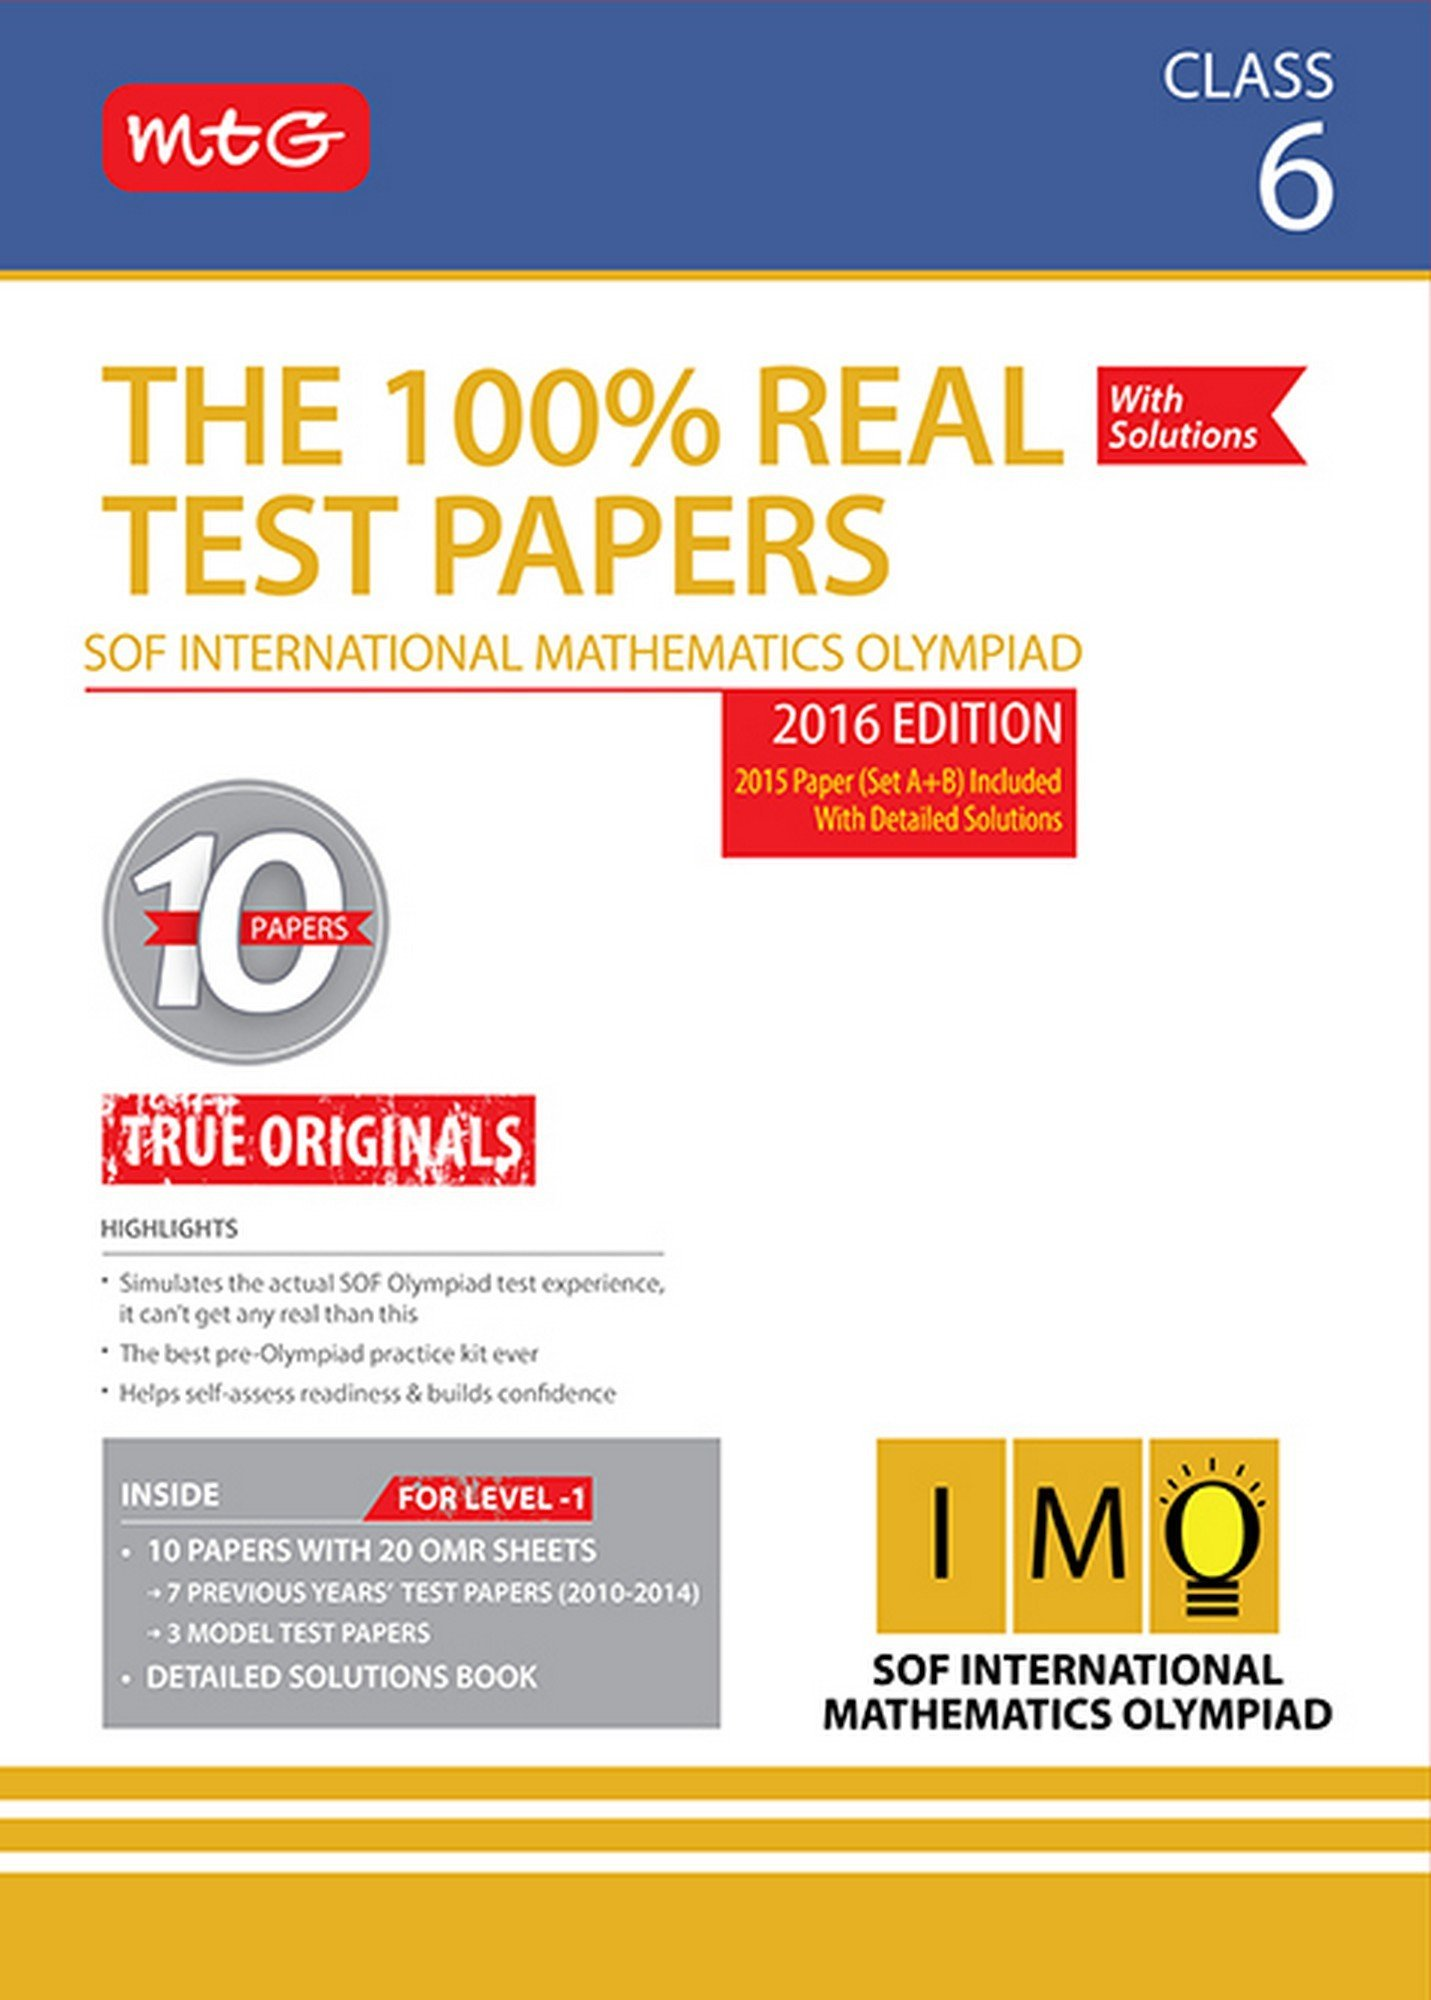 Buy 100% Real Test Papers (IMO) - Class 6 Book Online at Low